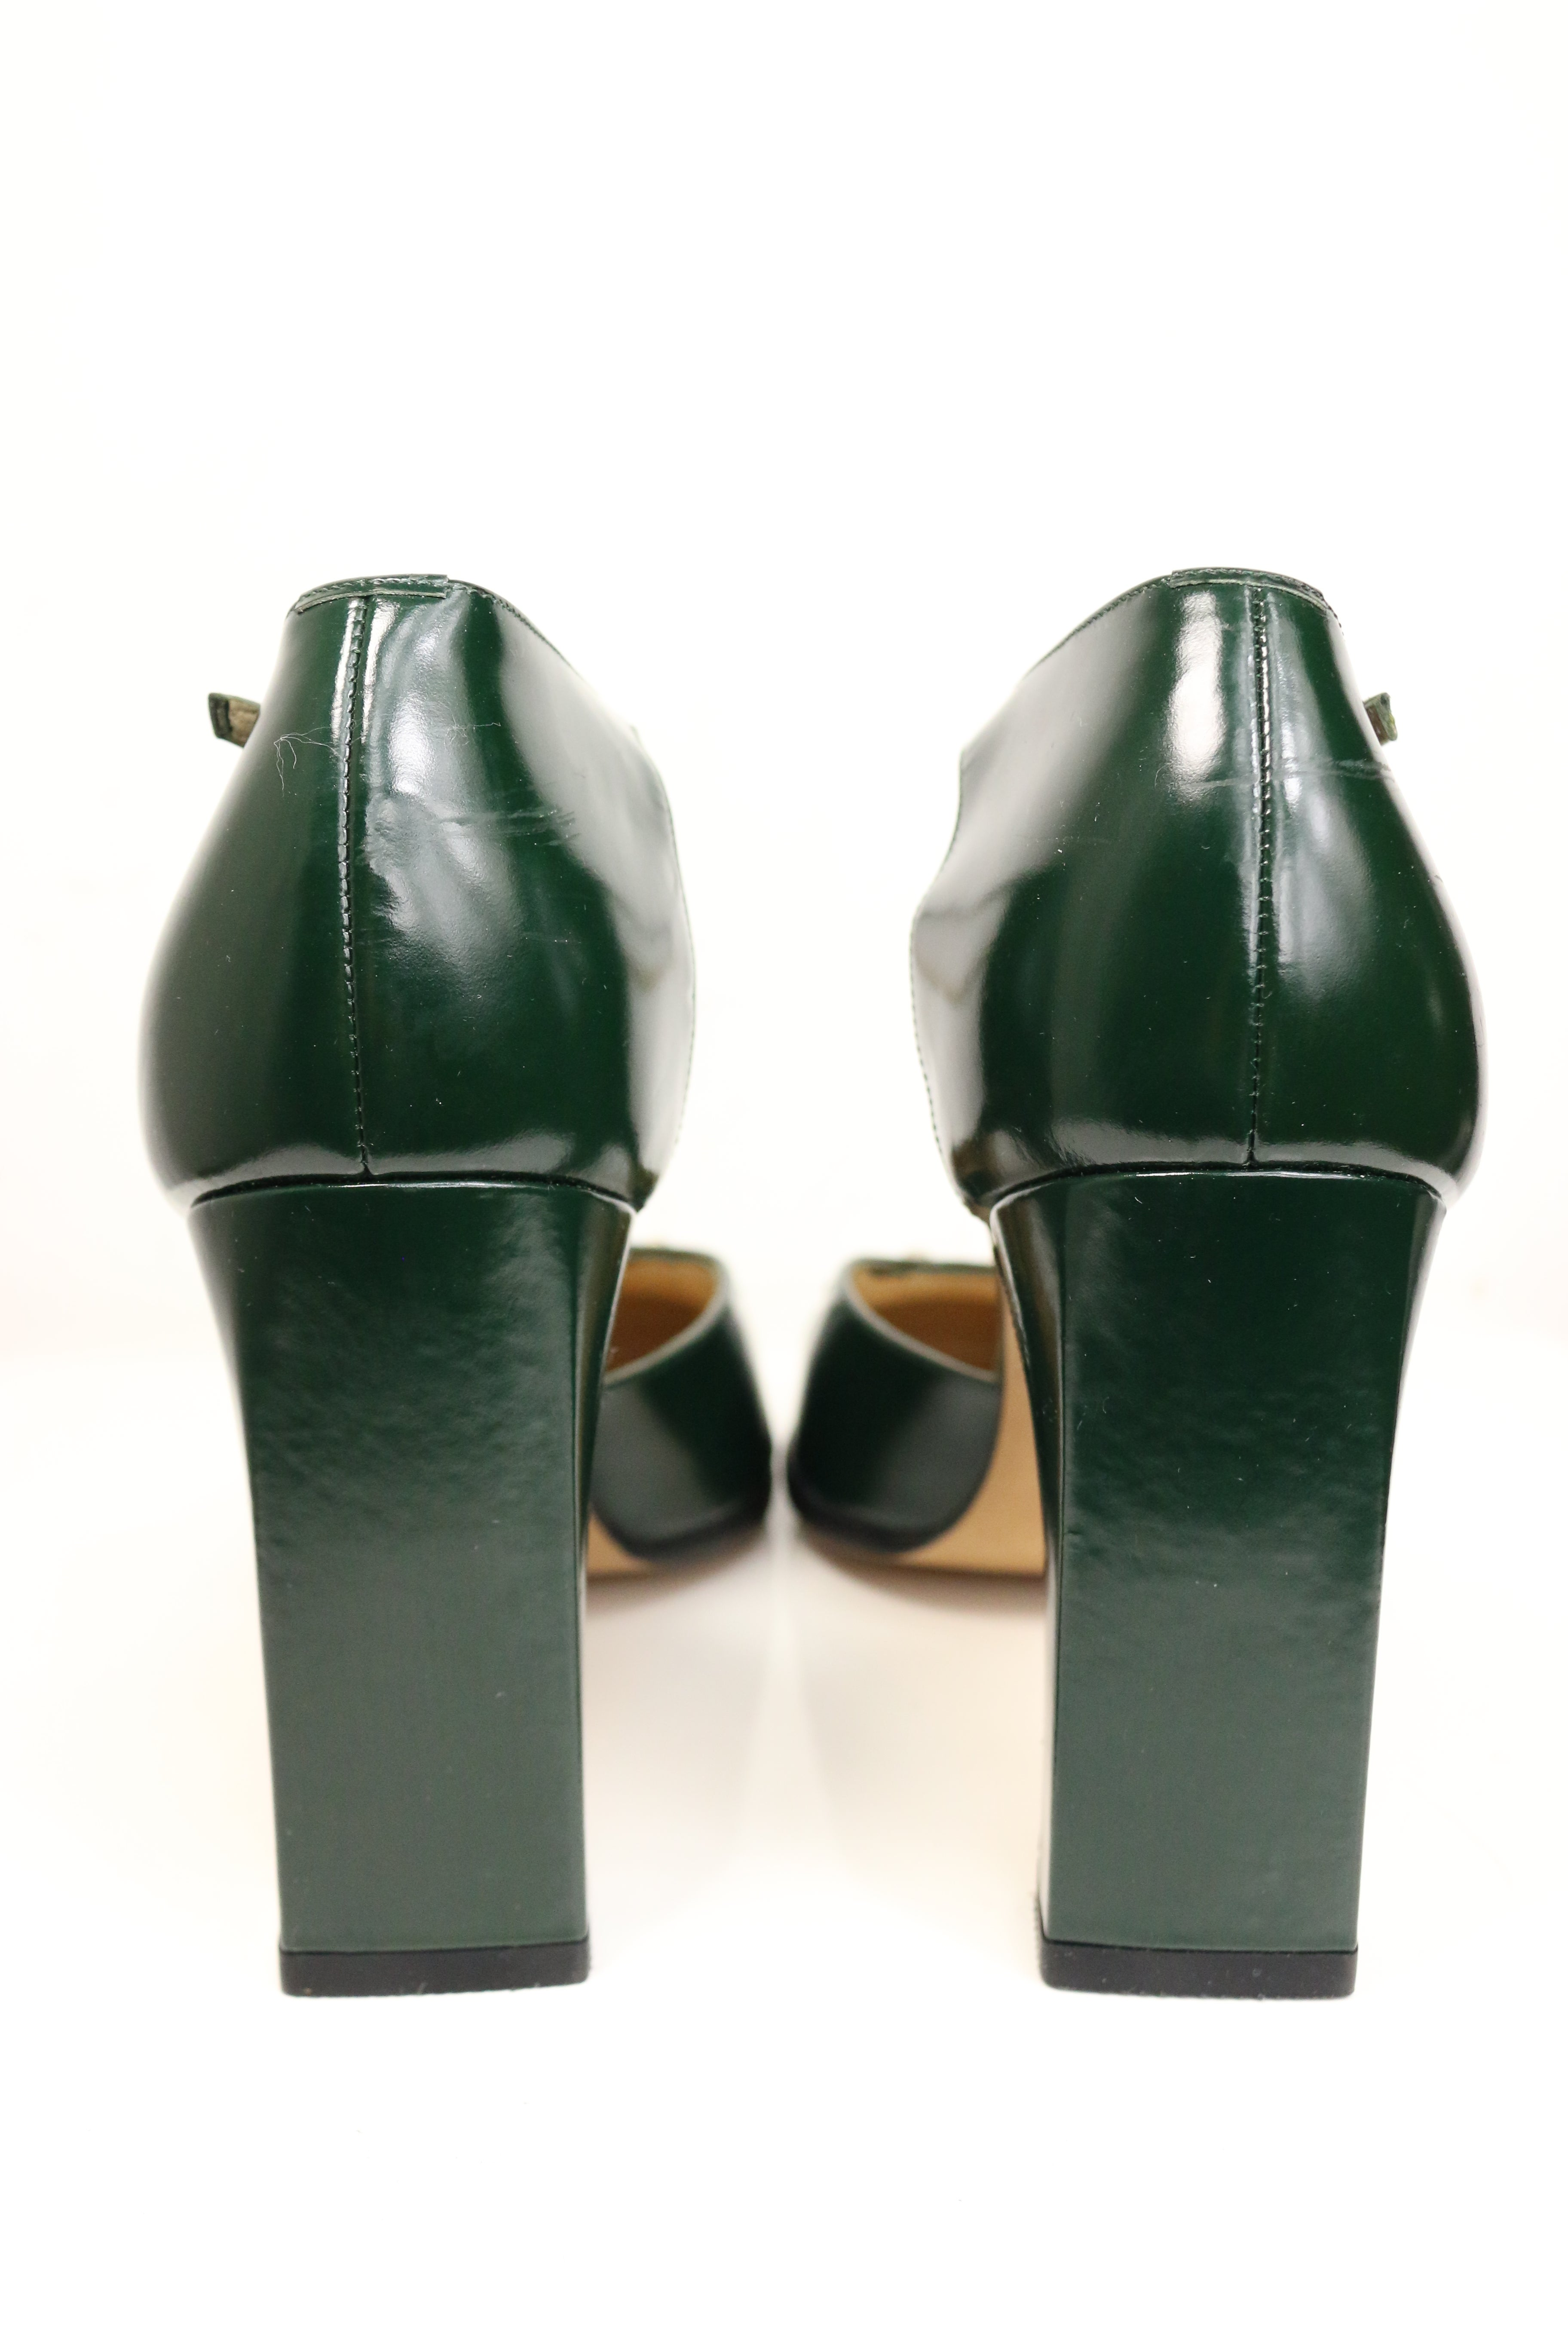 b3097cec8 Gucci by Tom Ford Classic Green Leather Square Toe Strap Pumps For Sale at  1stdibs